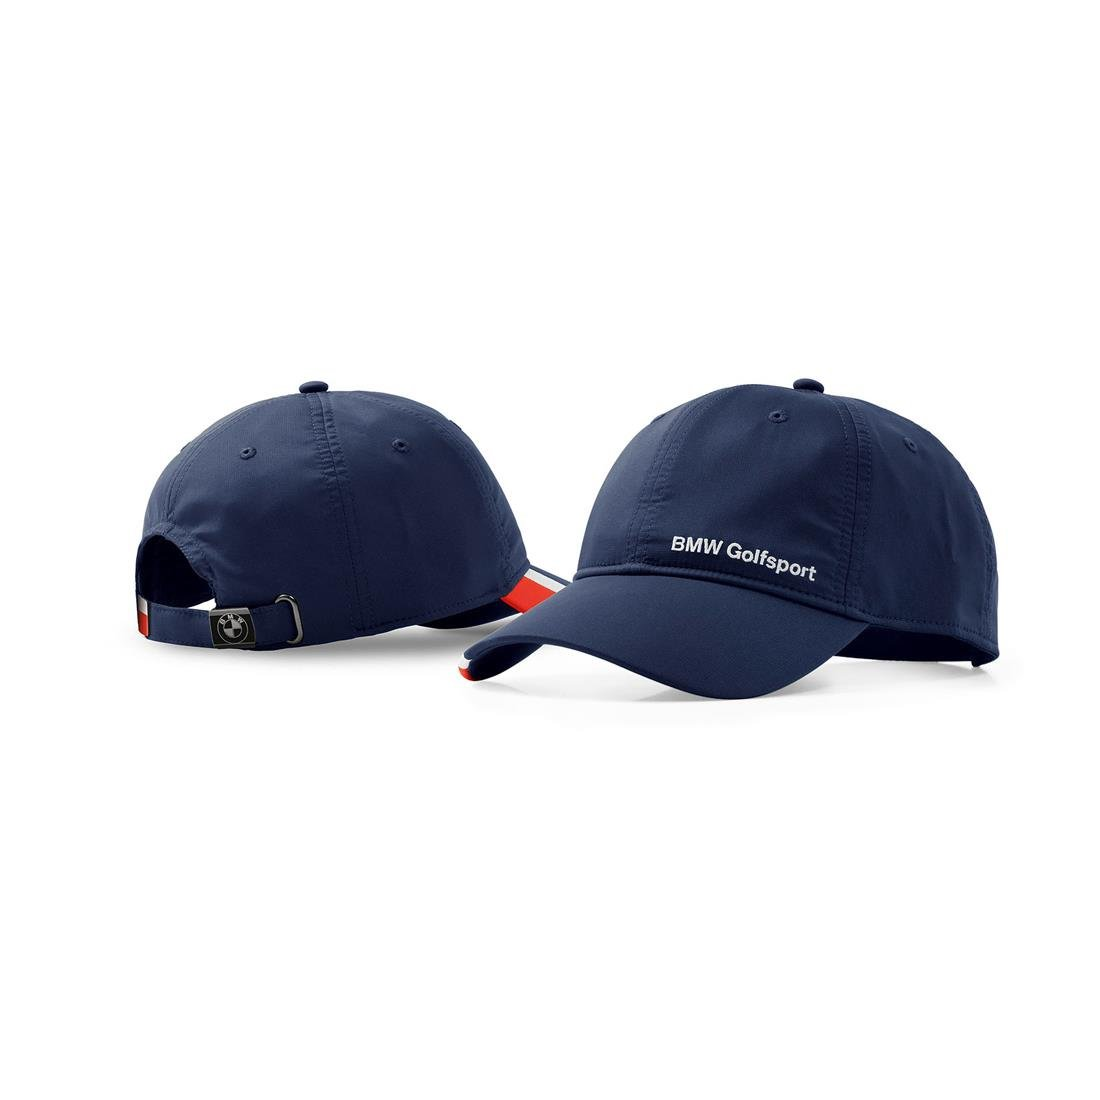 BMW nuevo genuino Golfsport Collection azul marino Unisex gorra de béisbol sombrero 80162446378: Amazon.es: Coche y moto